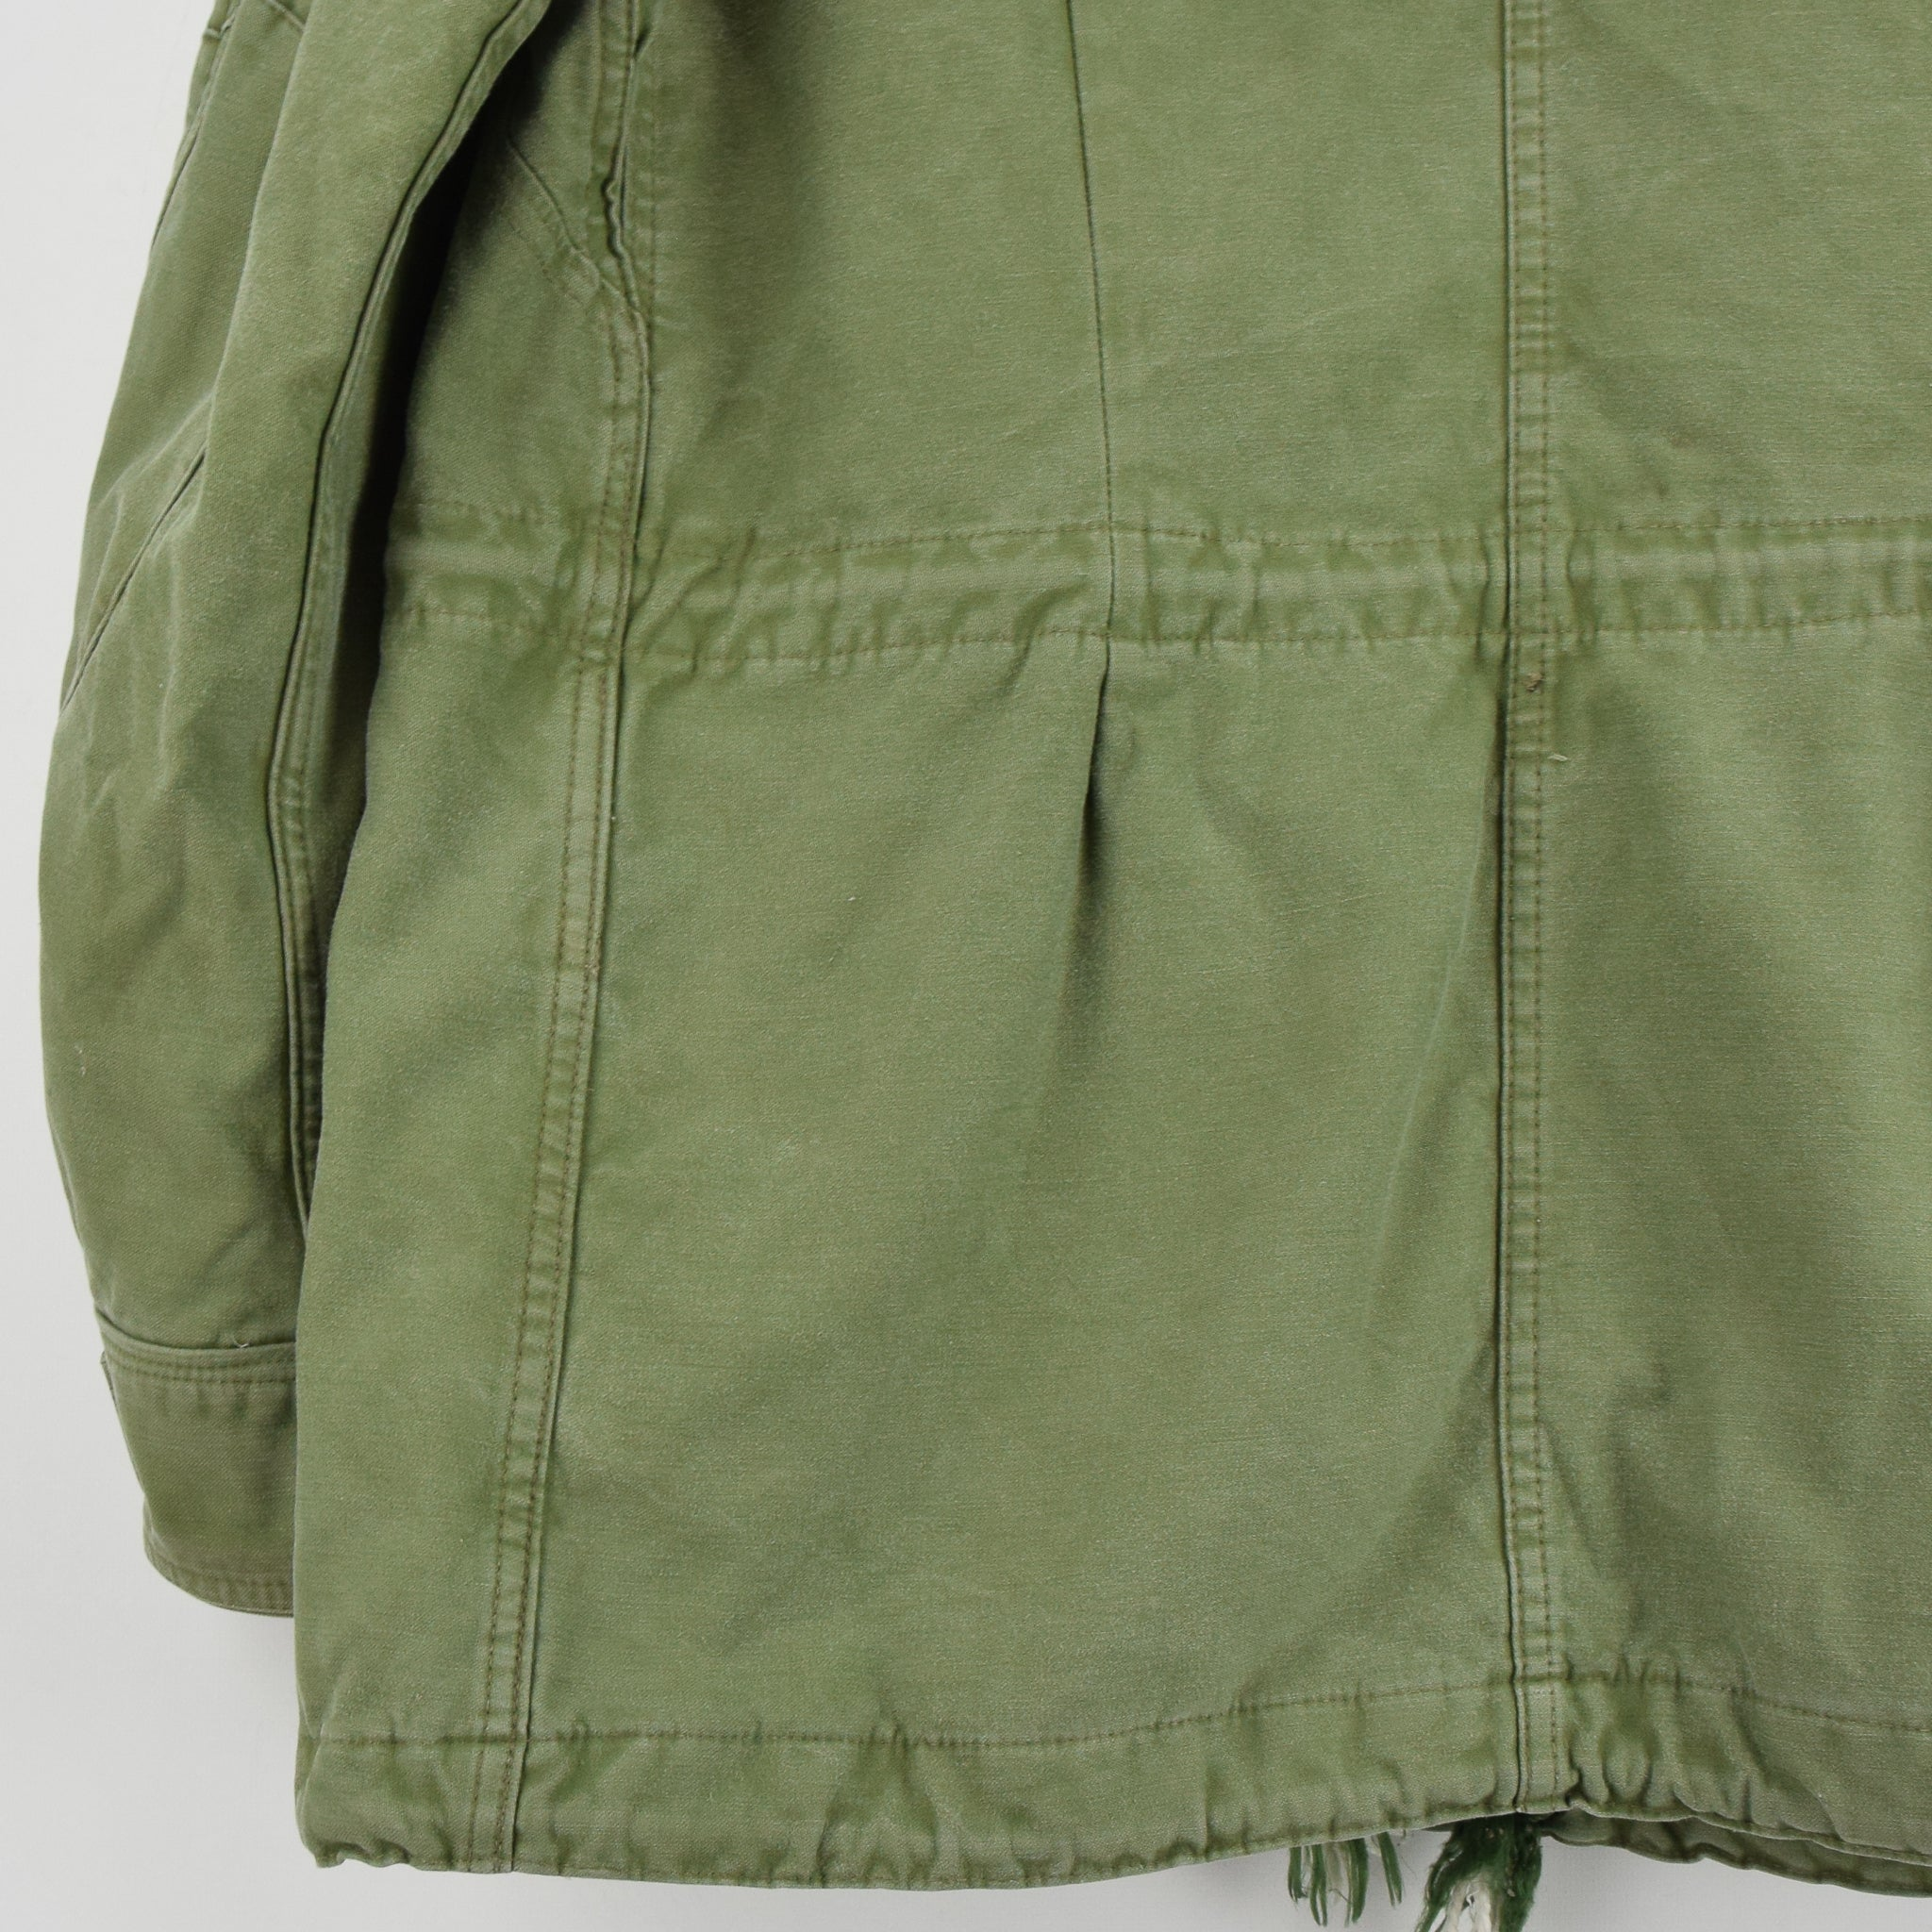 Vintage 90s Irish Army Combat Tunic Field Jacket Green Made in Ireland M back hem